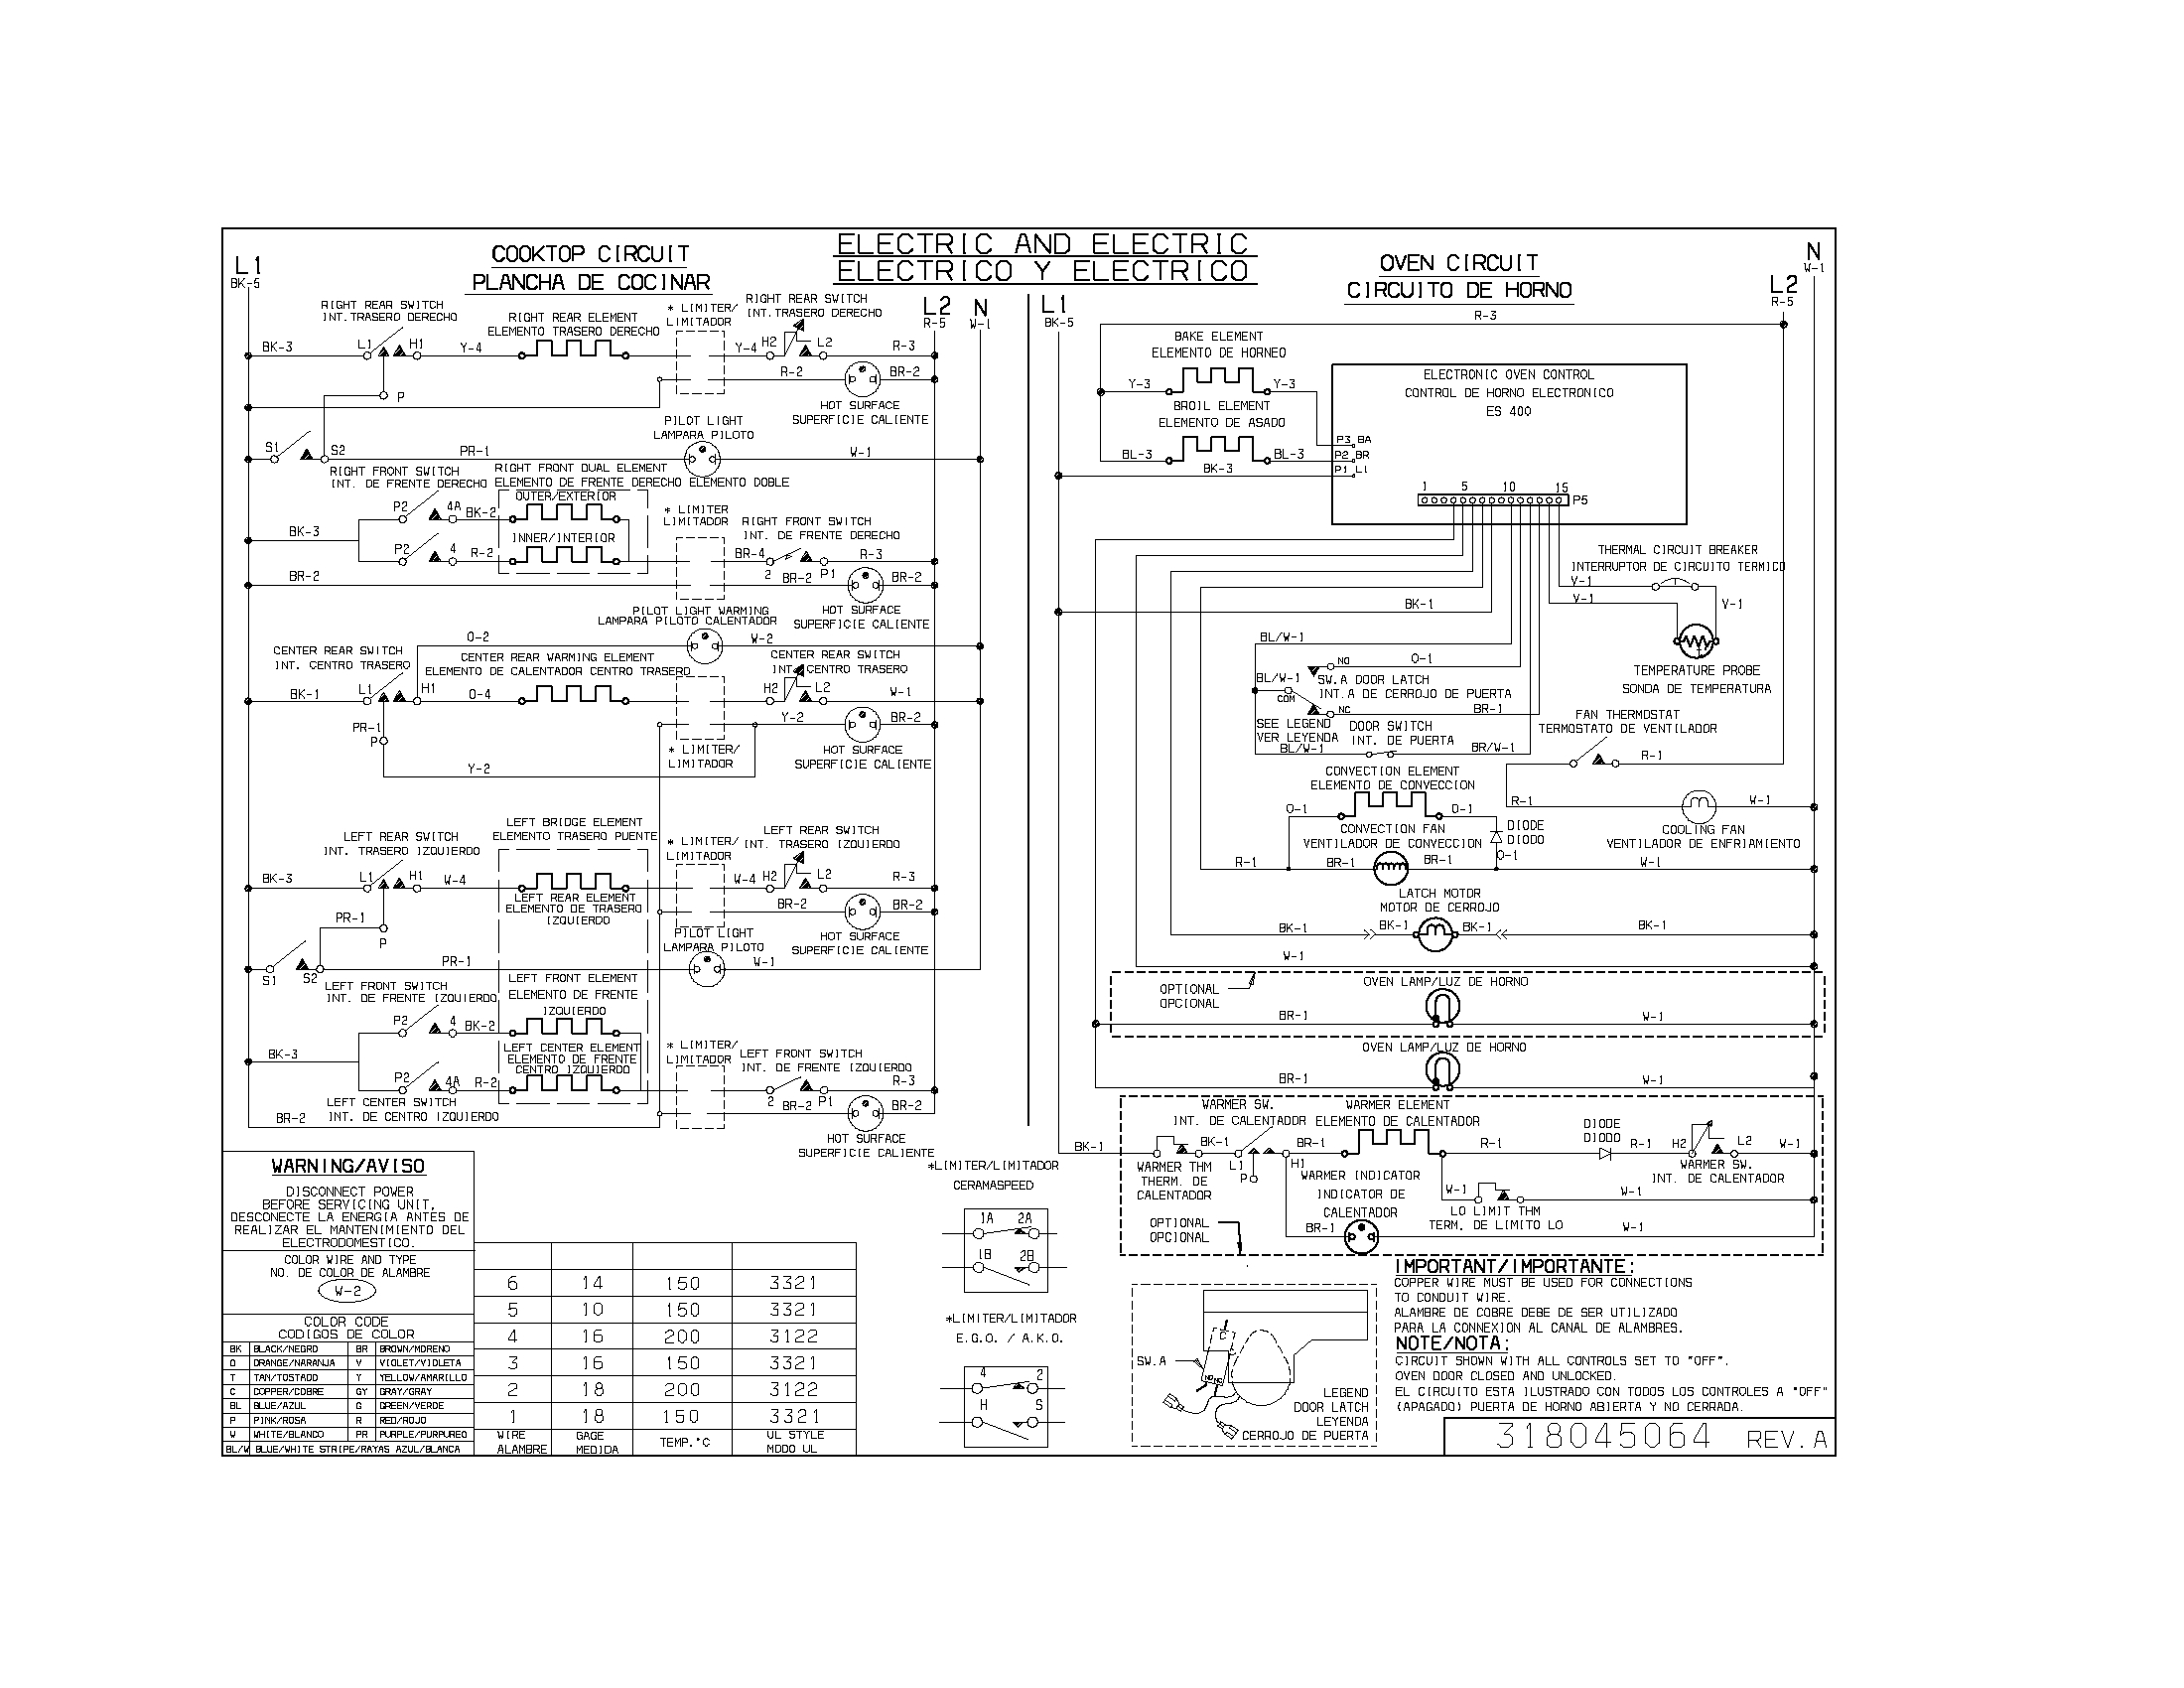 kenmore dishwasher wiring diagram to wiring diagram parts in kenmore 90 series dryer parts diagram?resize\=665%2C514\&ssl\=1 kenmore laundry center wiring diagrams on kenmore download wirning  at gsmx.co